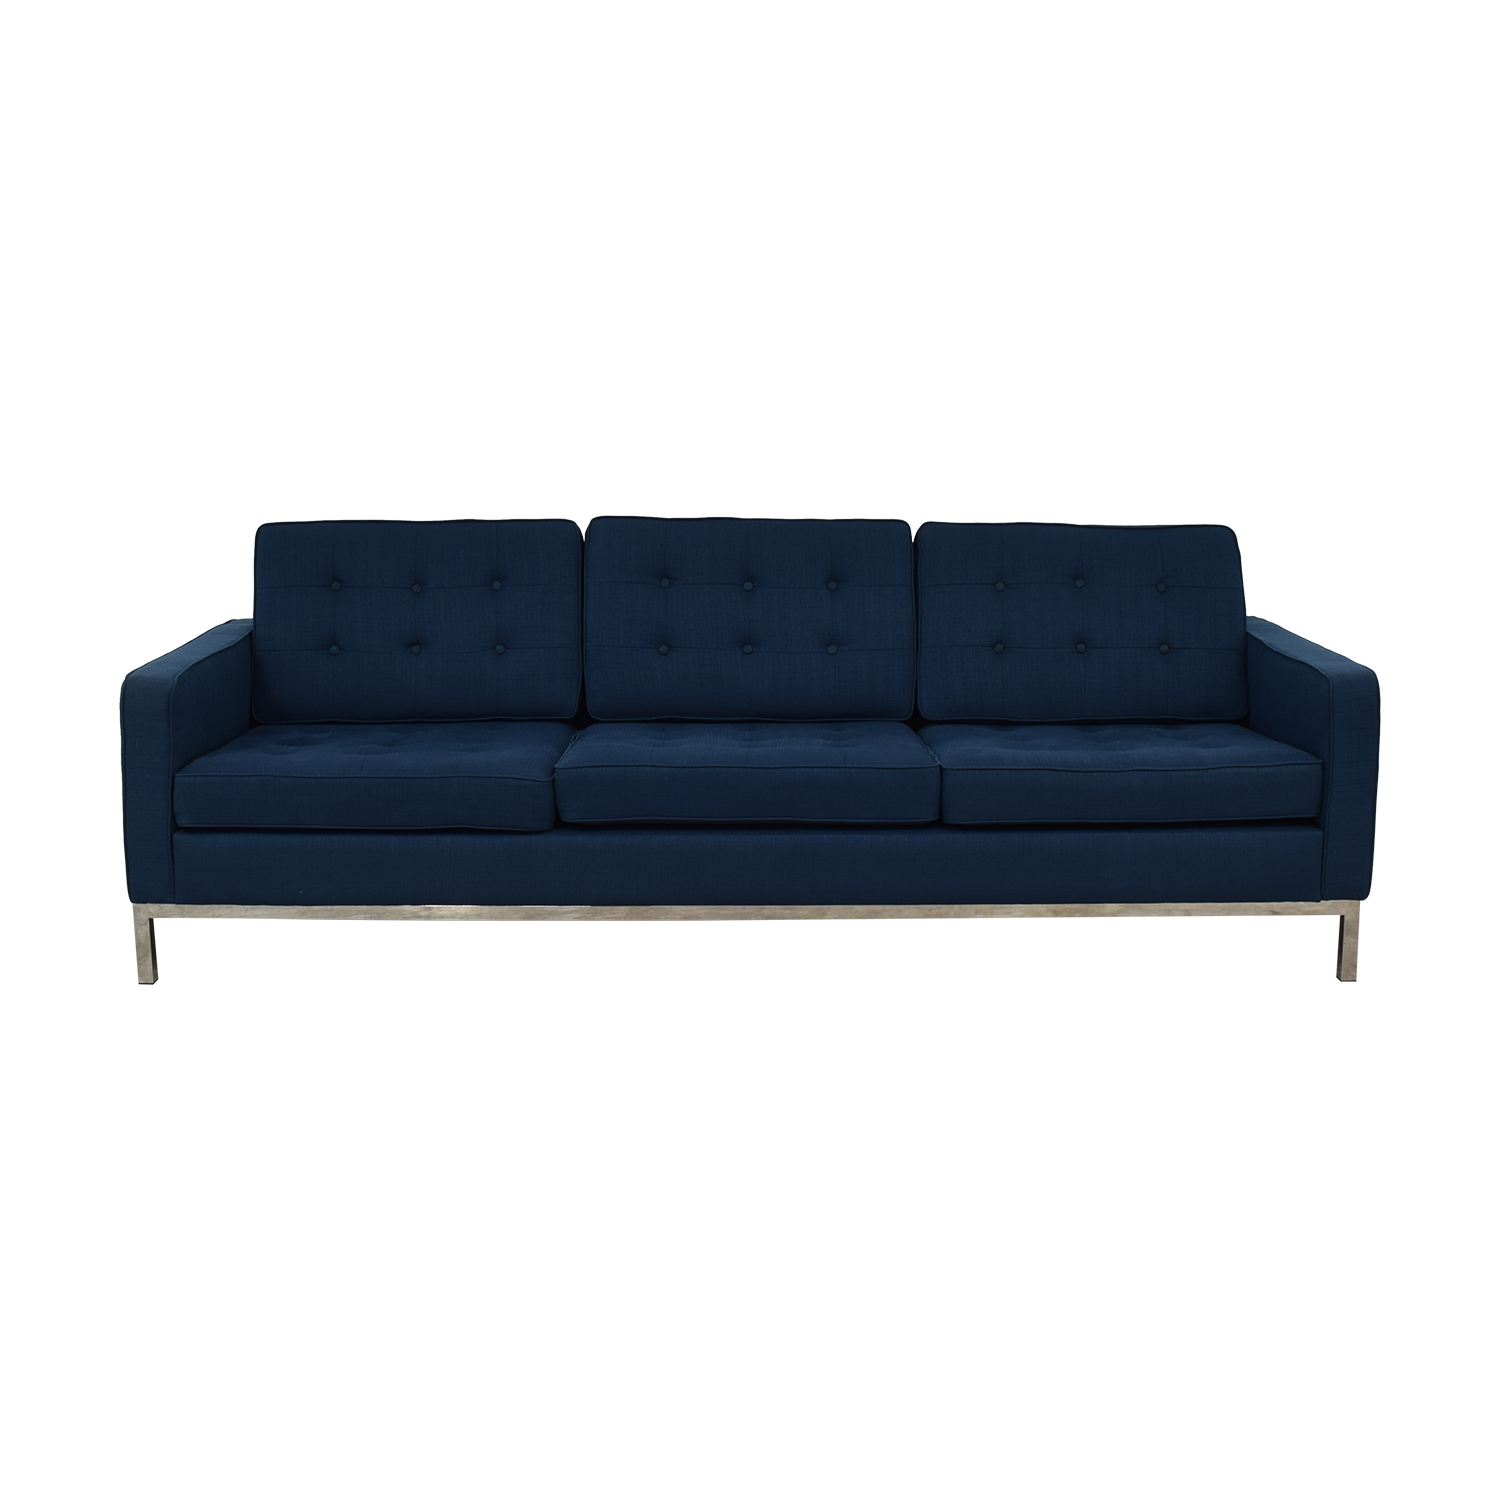 Modway Modway Loft Blue Tufted Three-Cushion Sofa dimensions